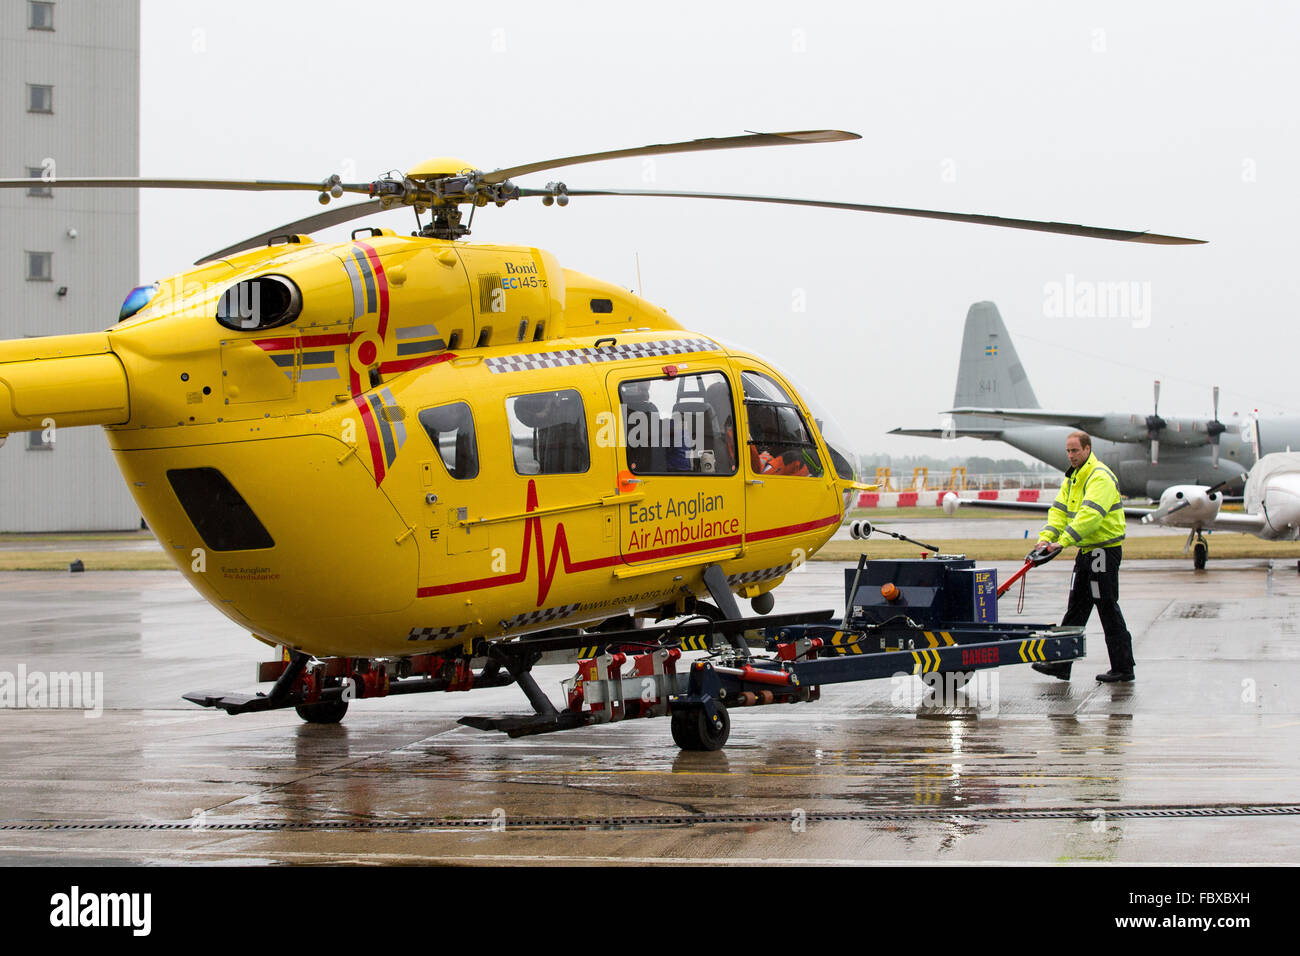 prince william at cambridge airport on the first day of his new prince william at cambridge airport on the first day of his new job as a helicopter pilot for the east anglian air ambulance